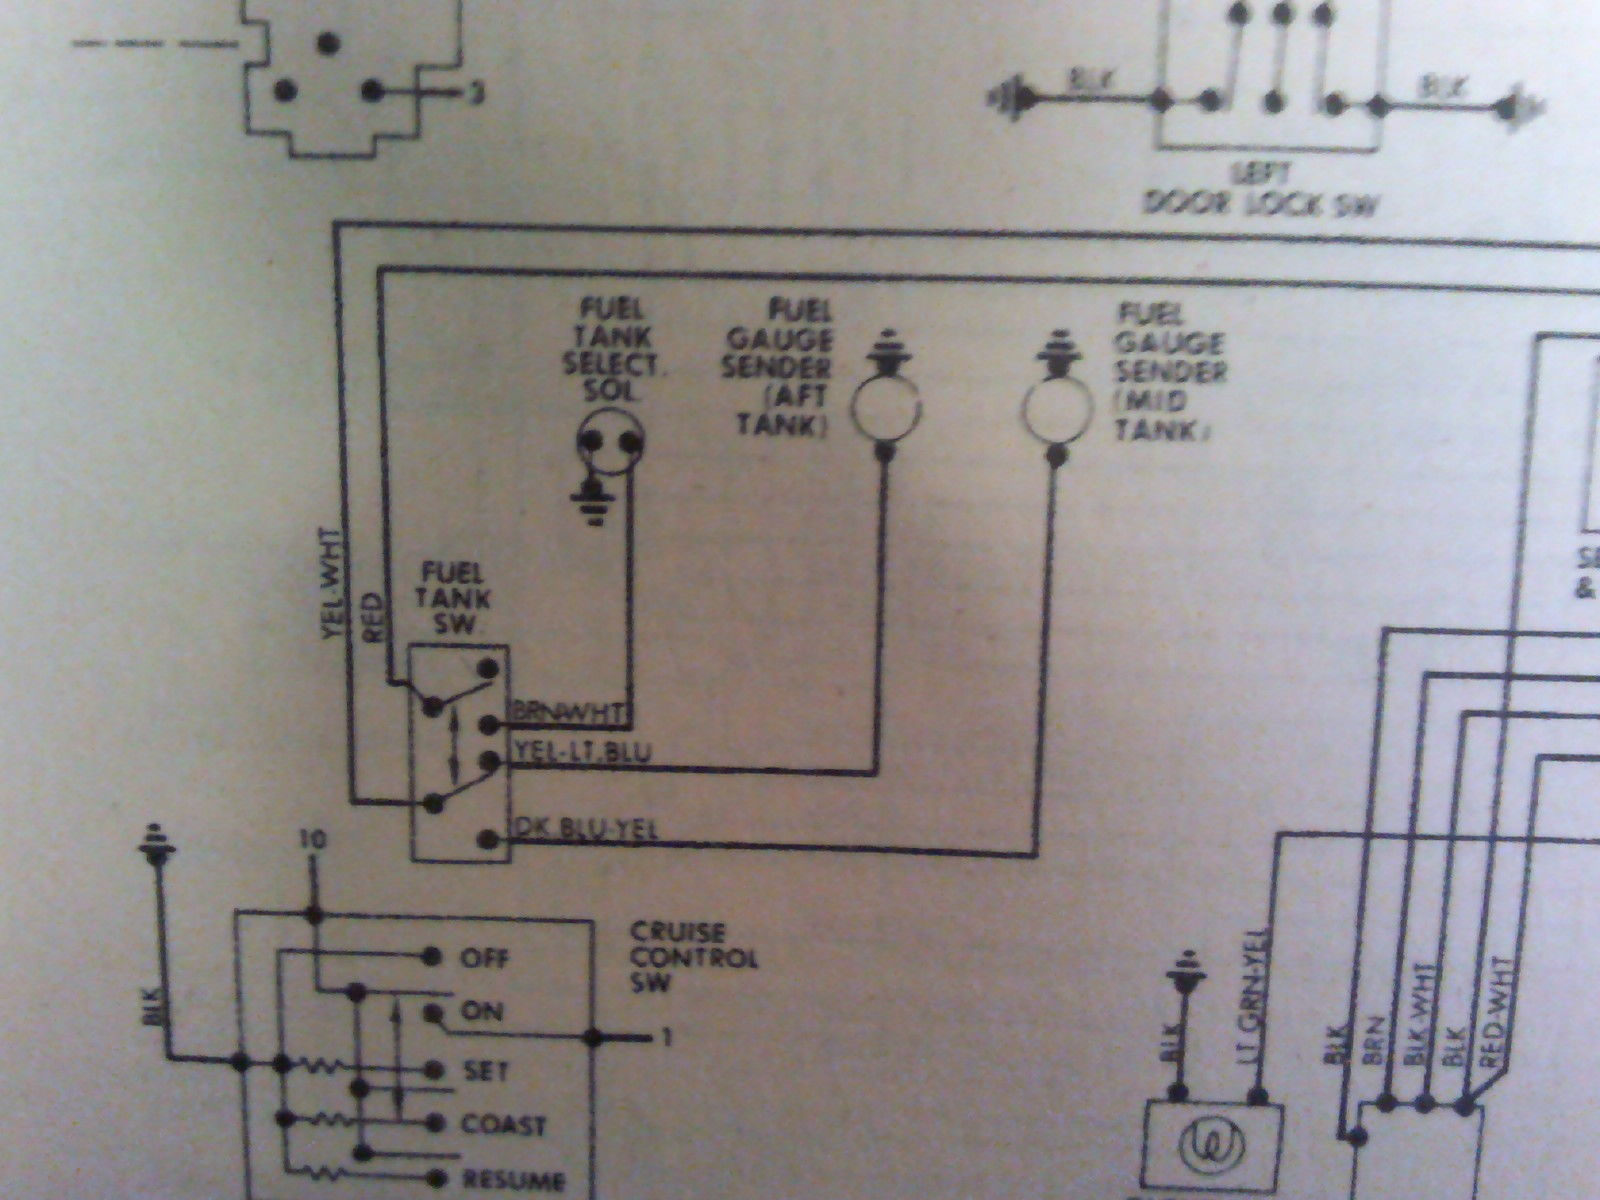 1993 ford f150 wiring diagram kenwood kdc 210u 82 get free image about